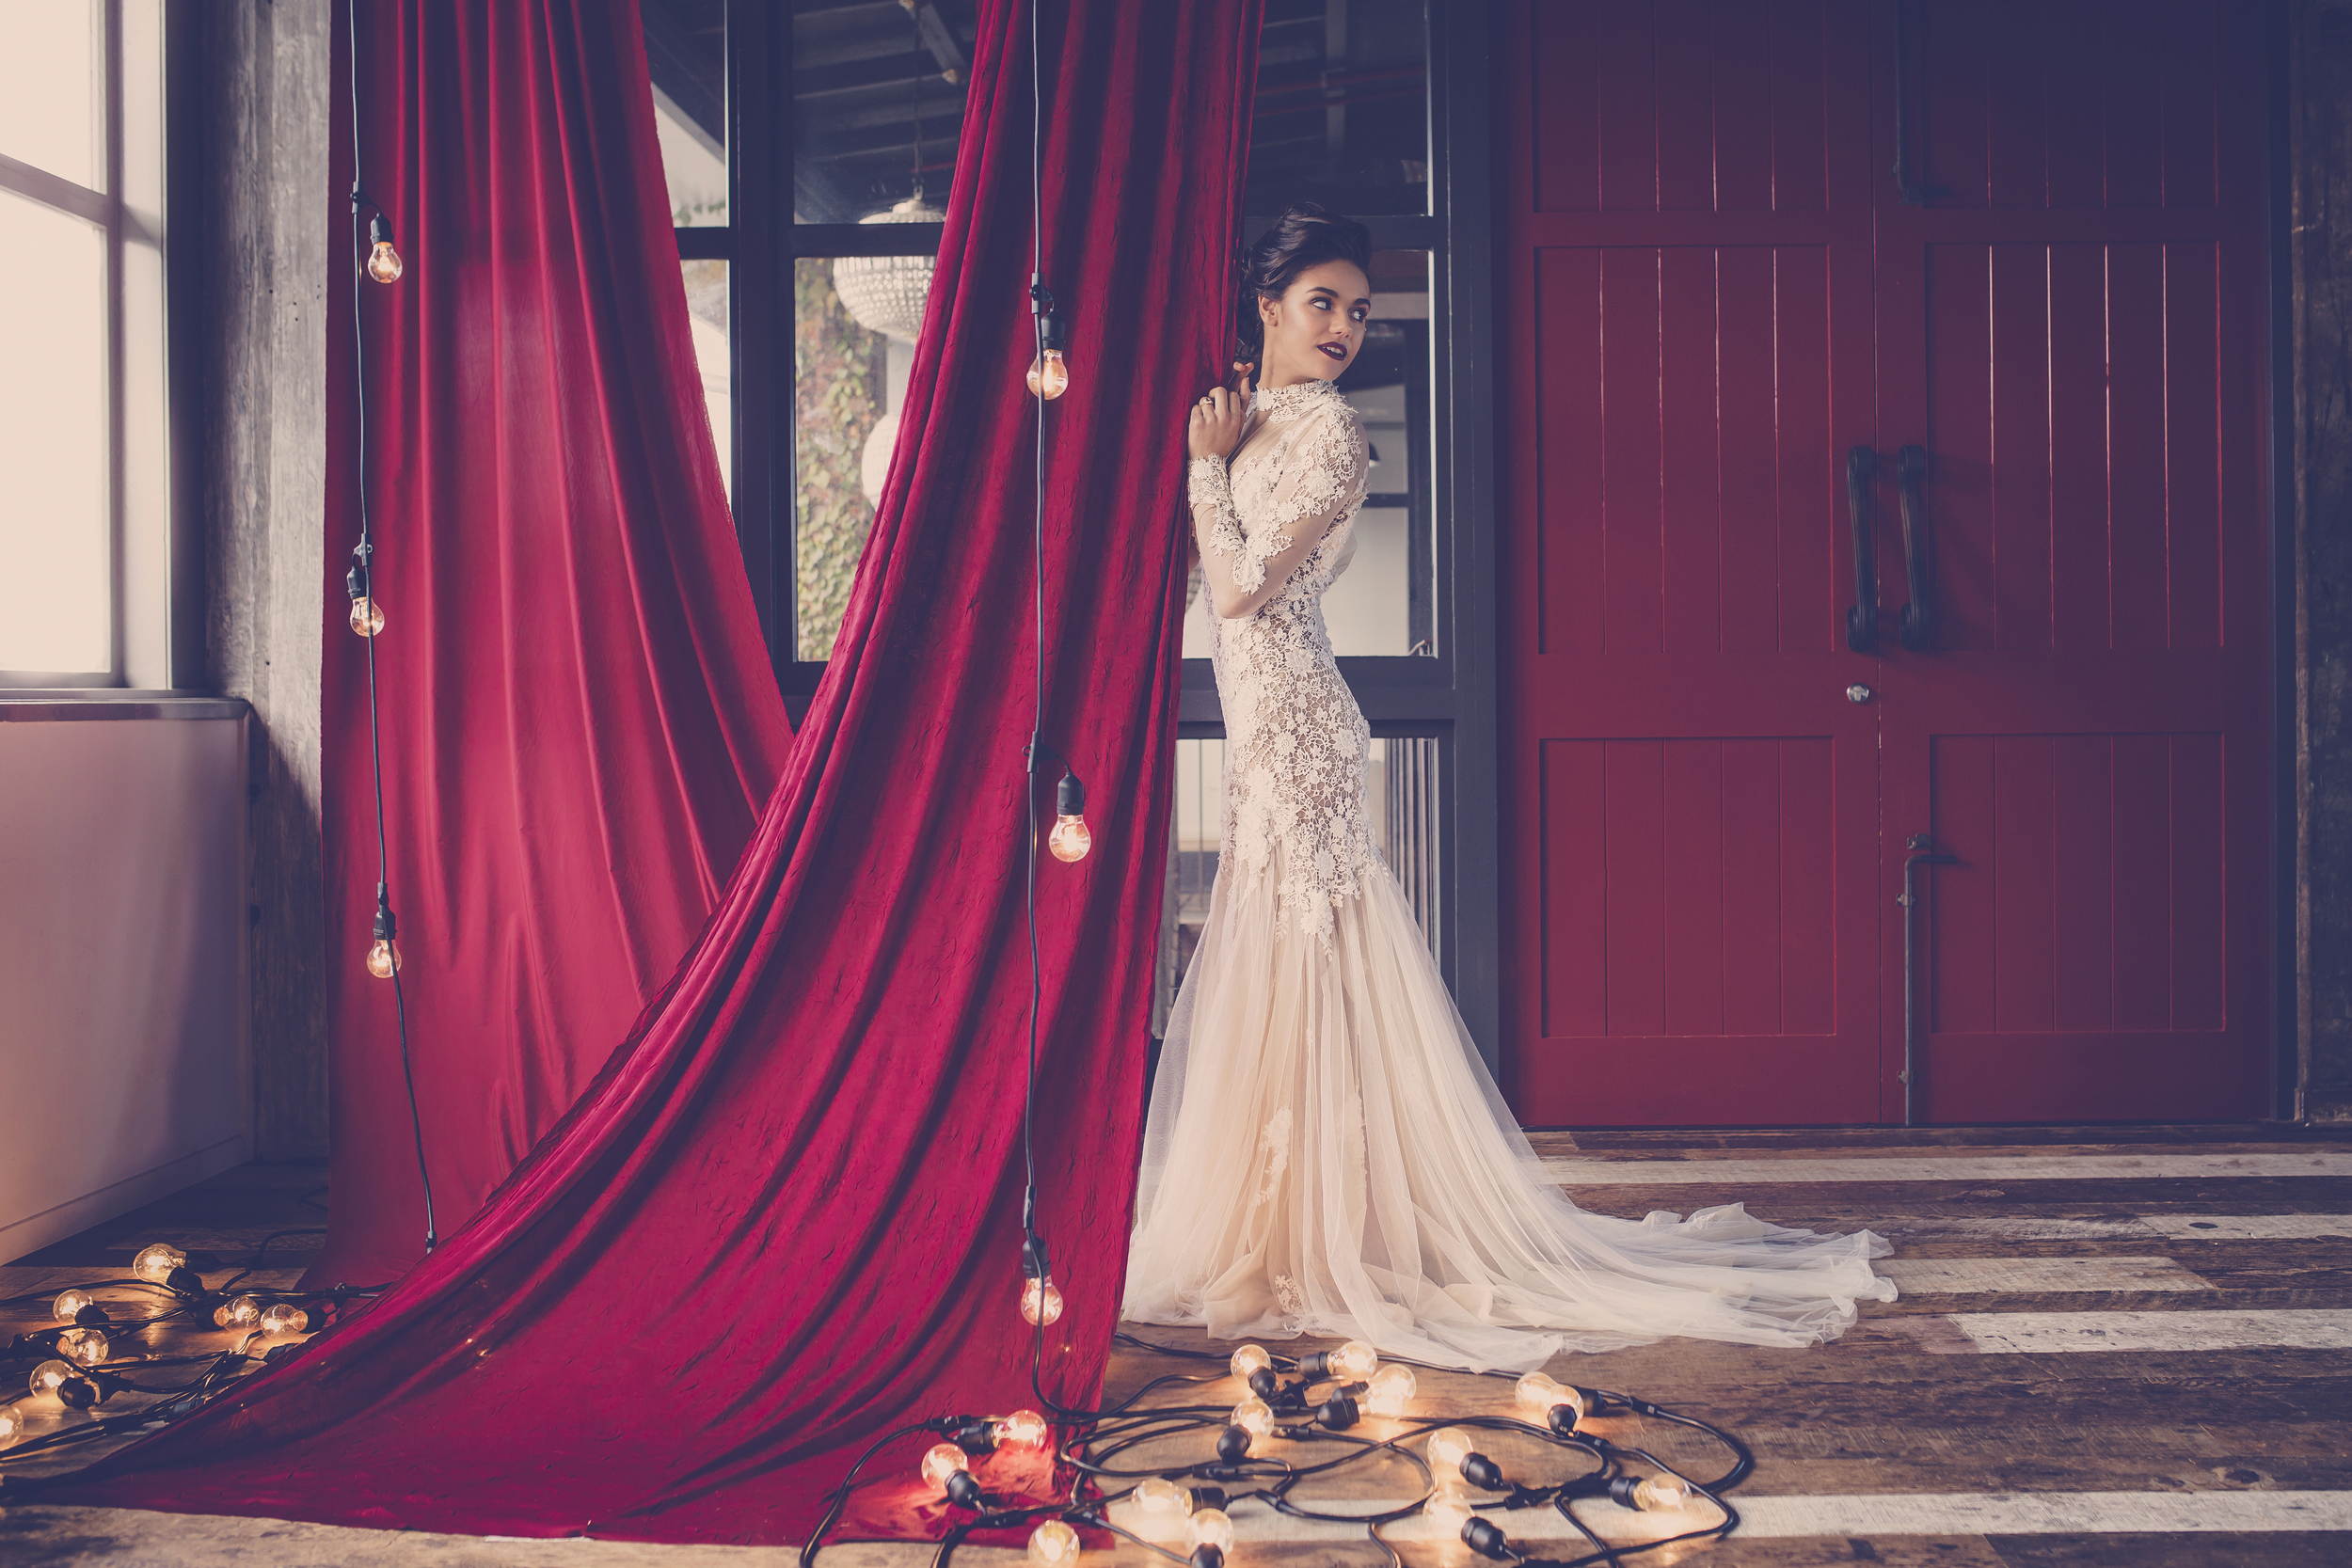 Image shot on location at The Sapphire Room for Harlow Garland by  Kate Little Photography